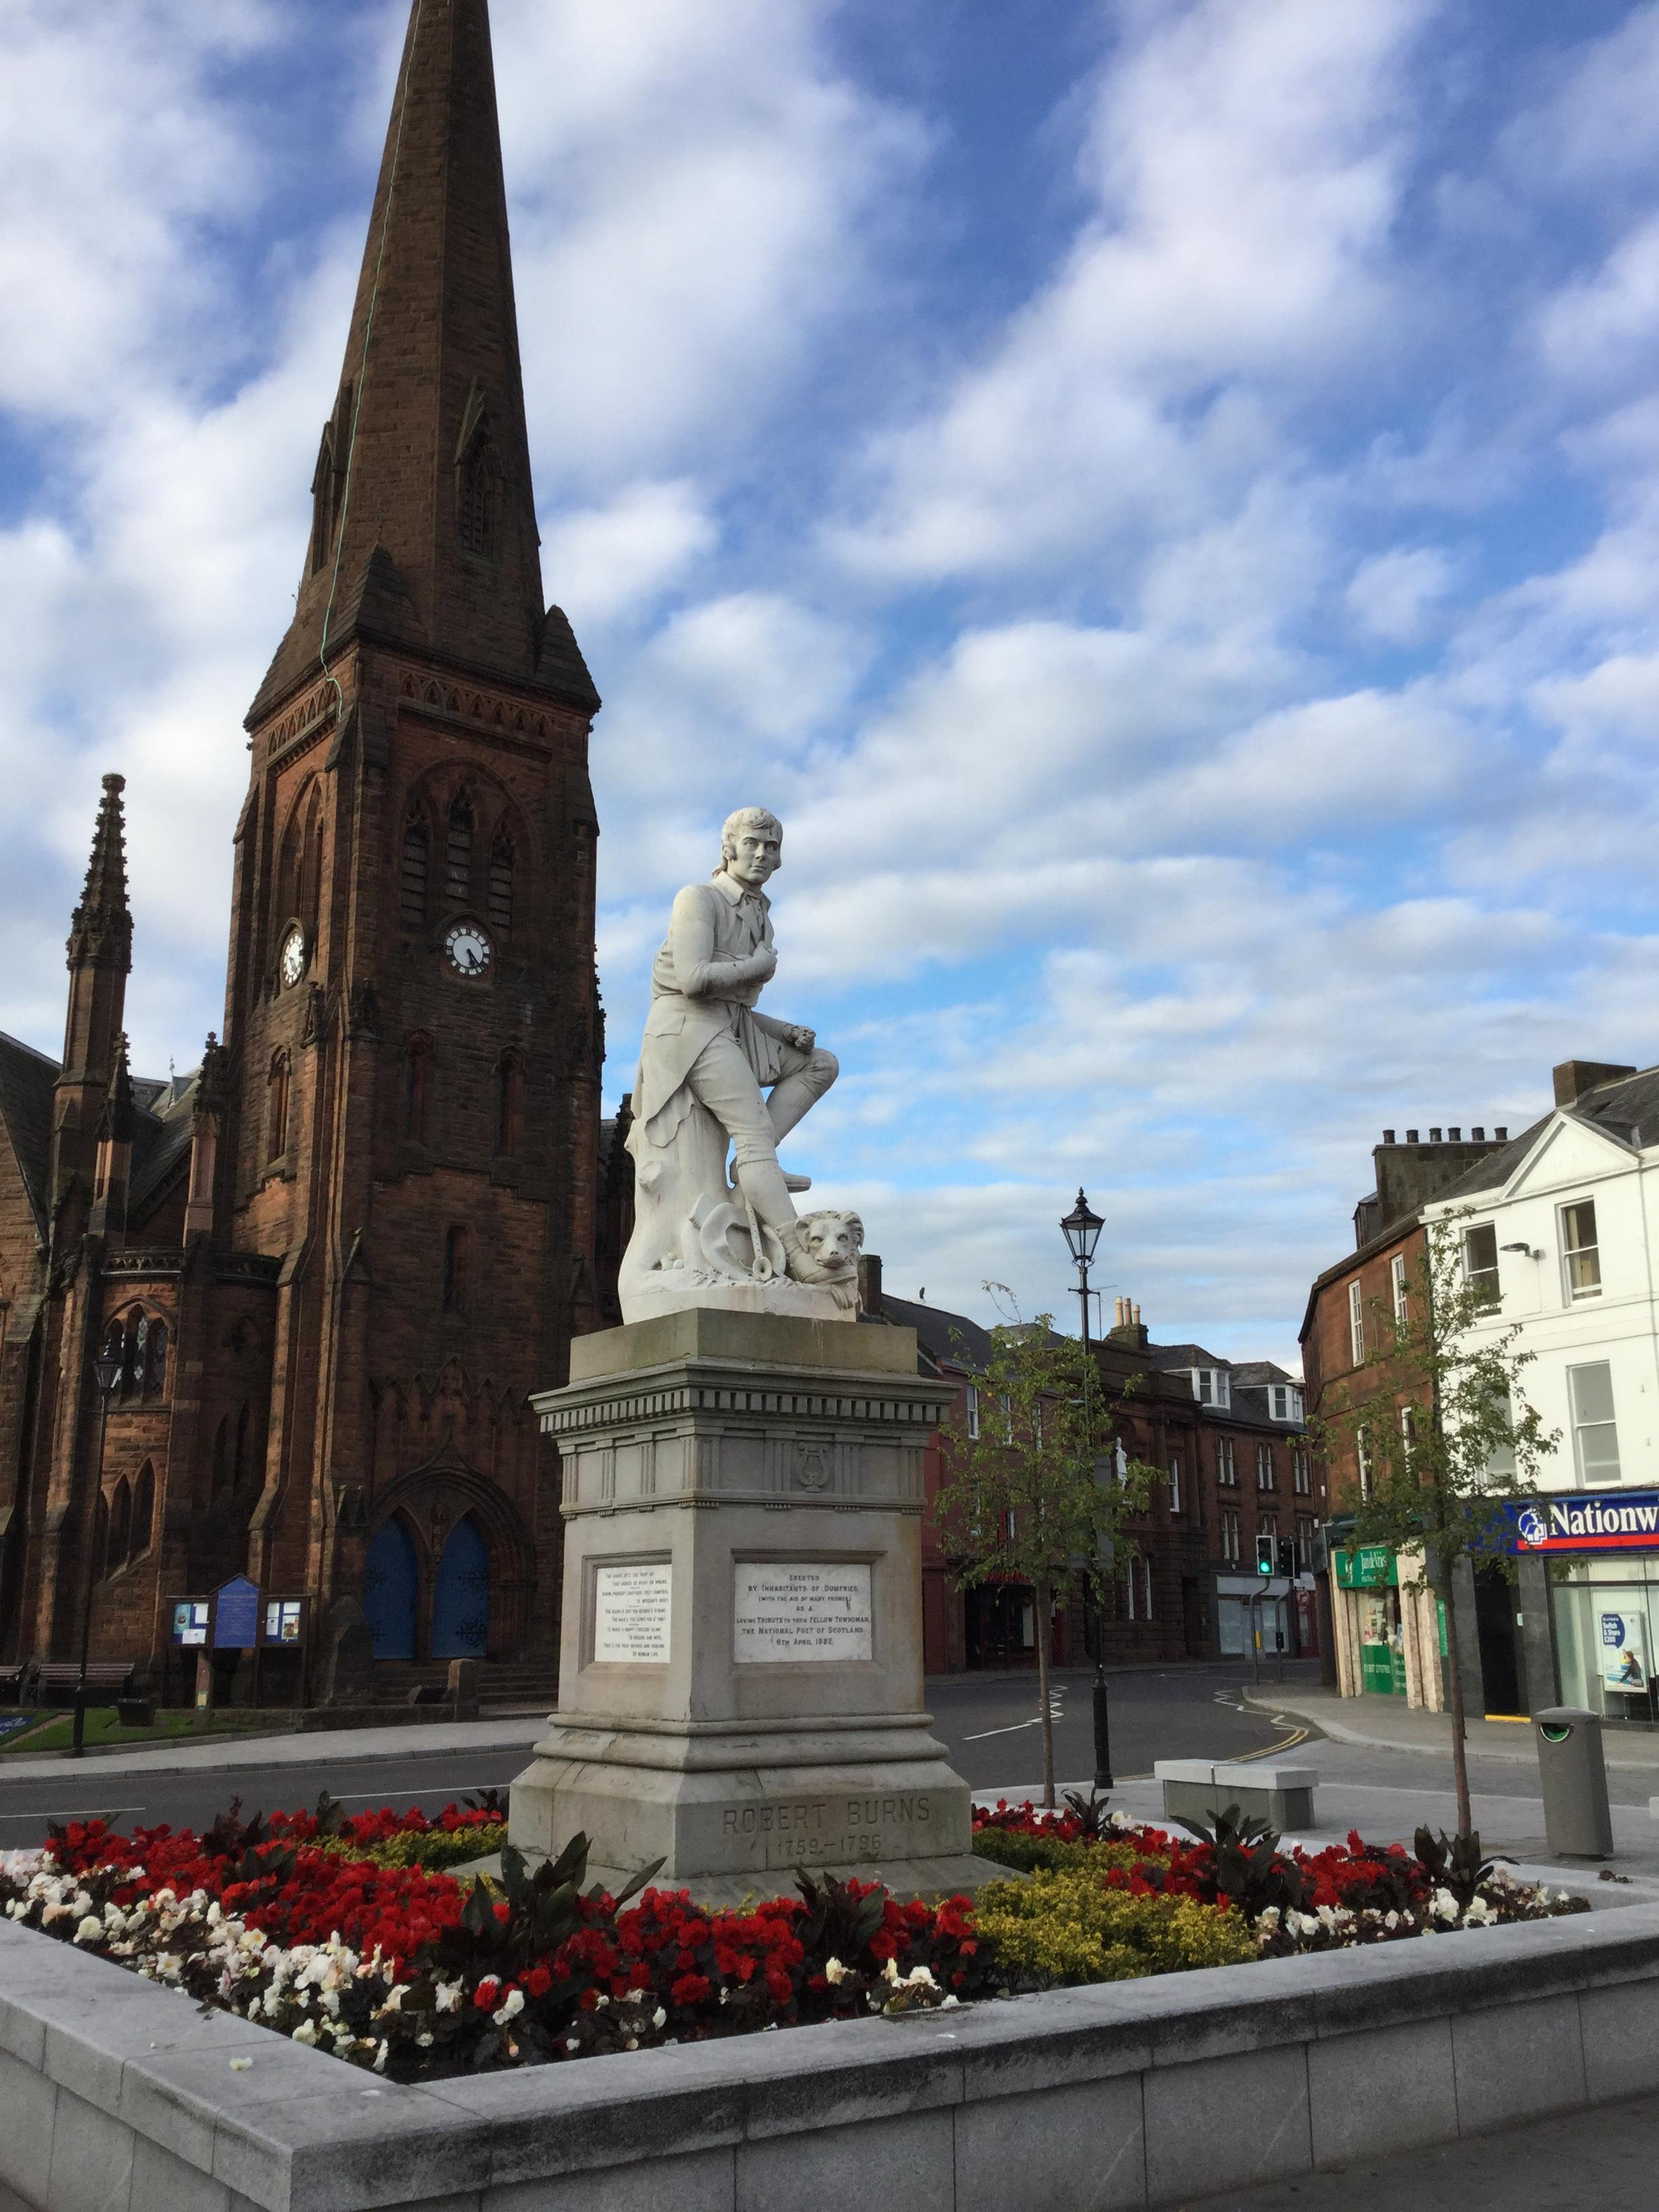 Robbie Burns in Dumfries town square